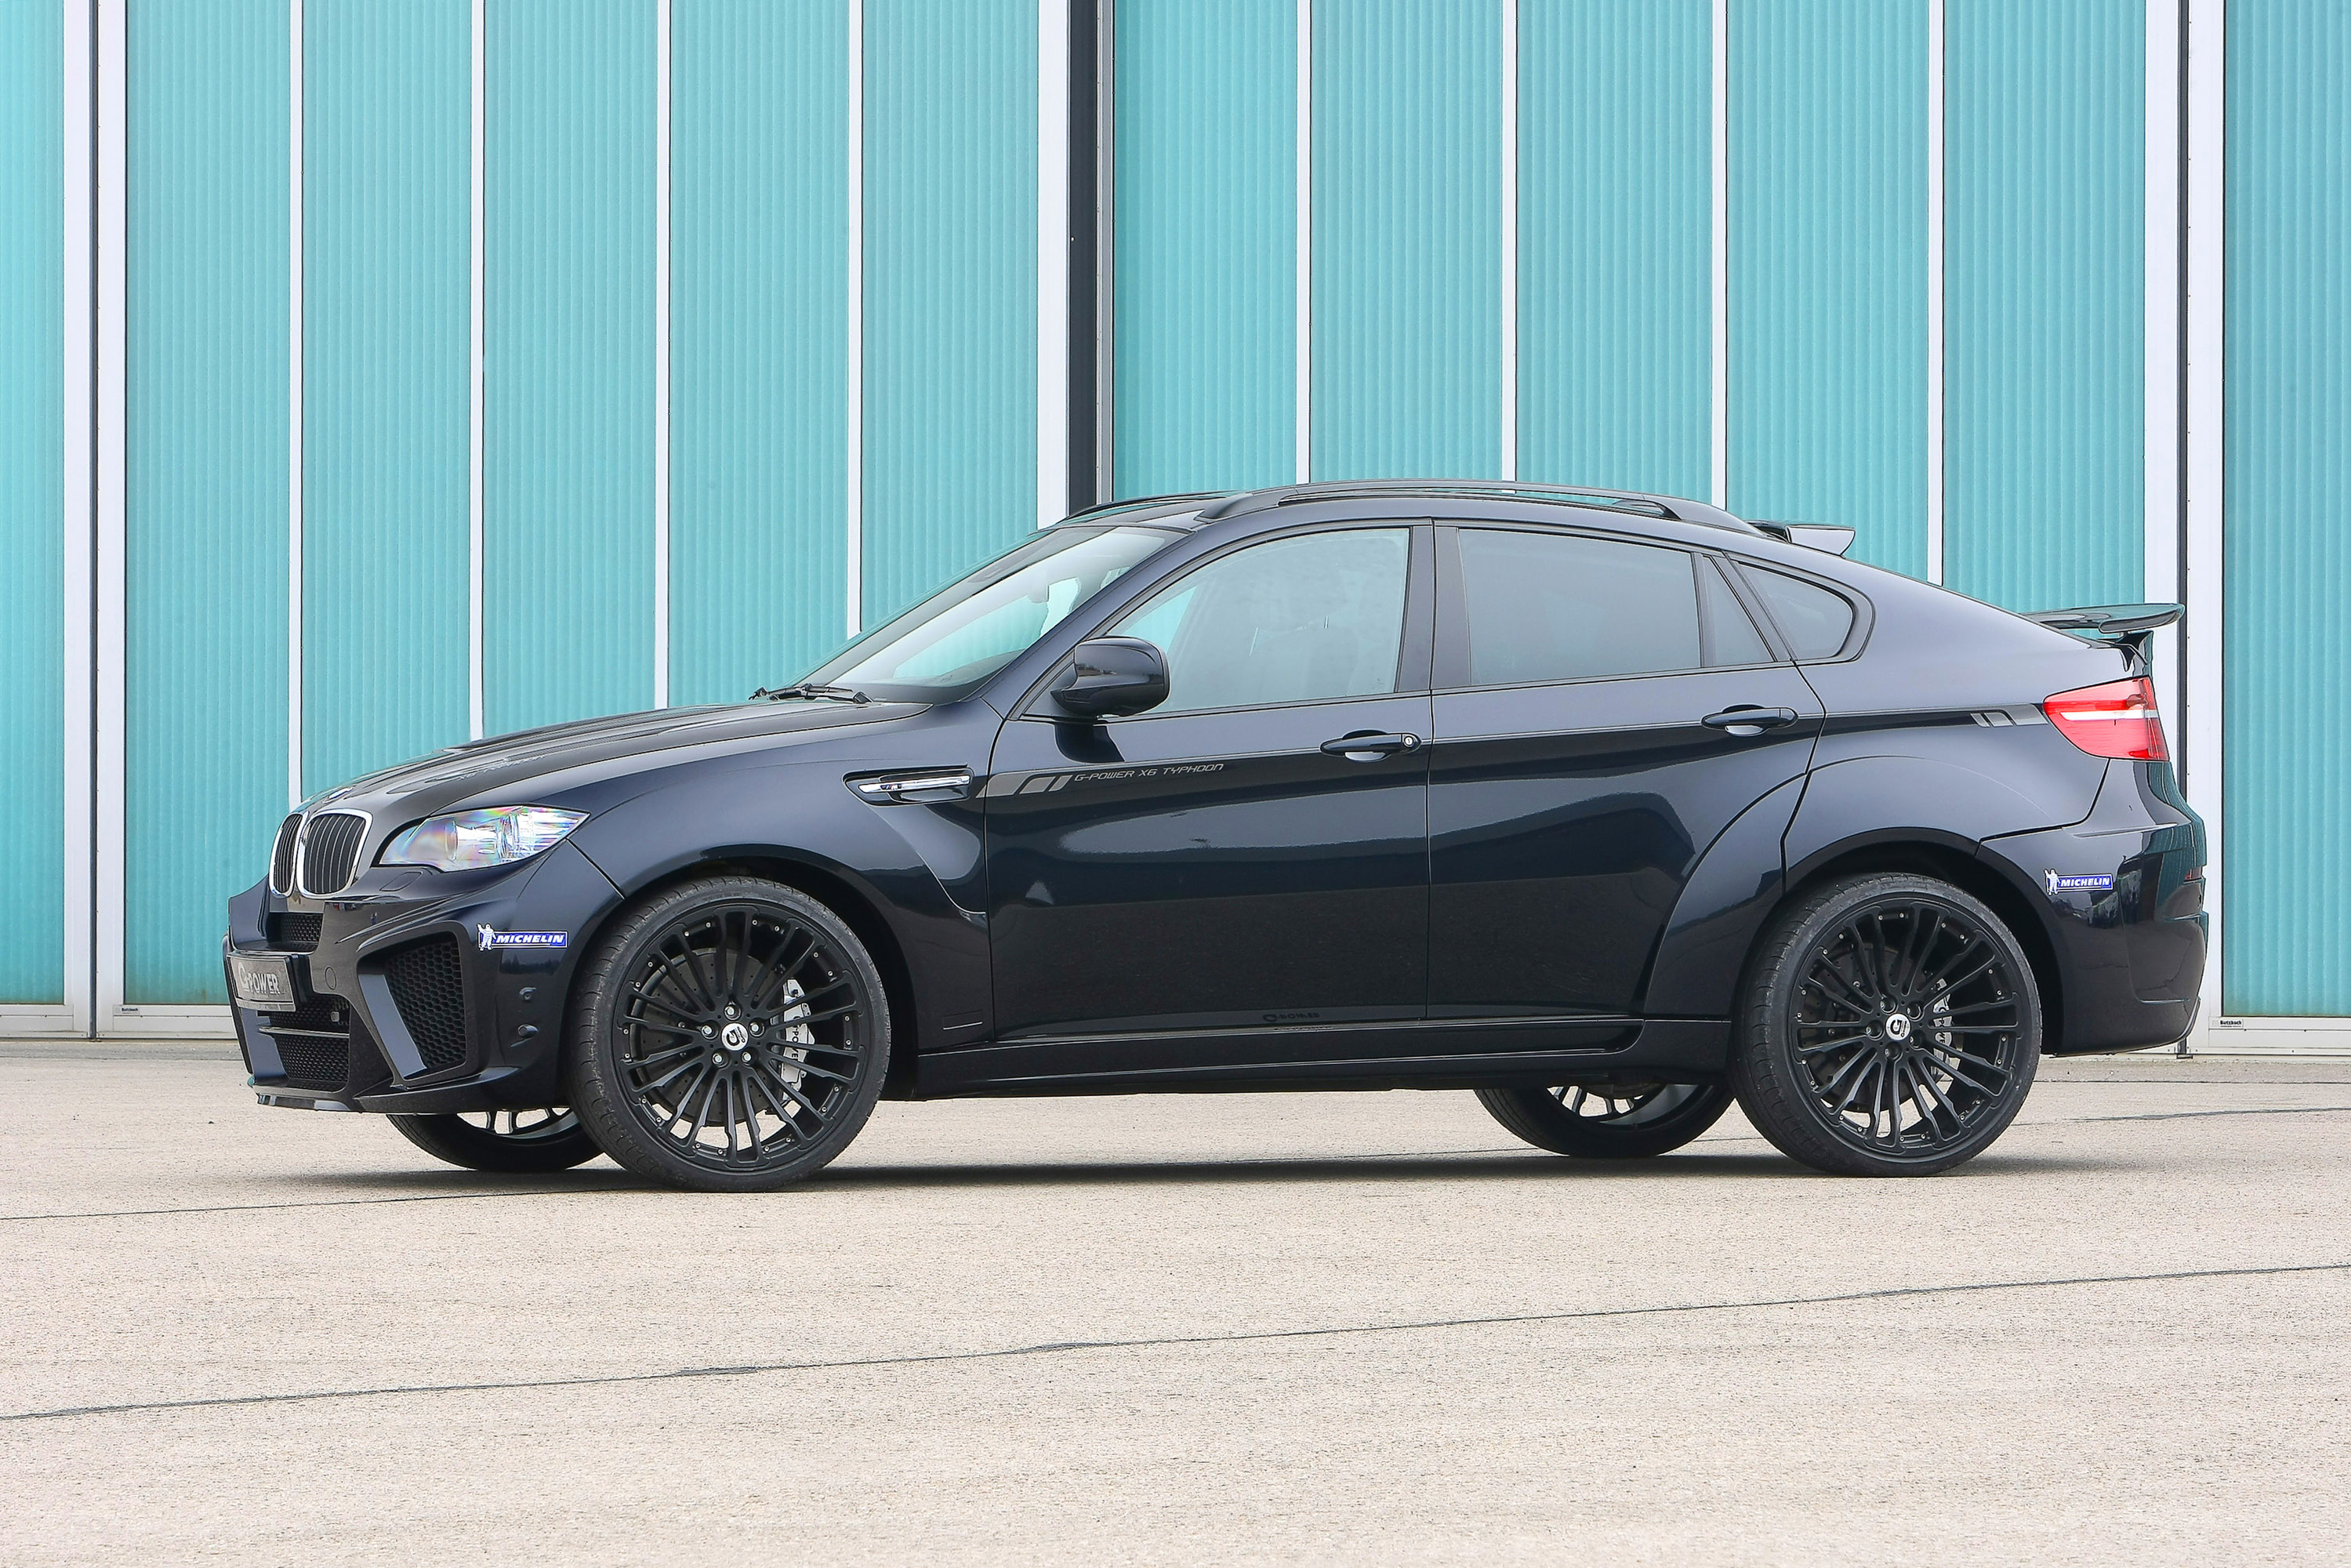 G Power Bmw X6 M Typhoon Wide Body